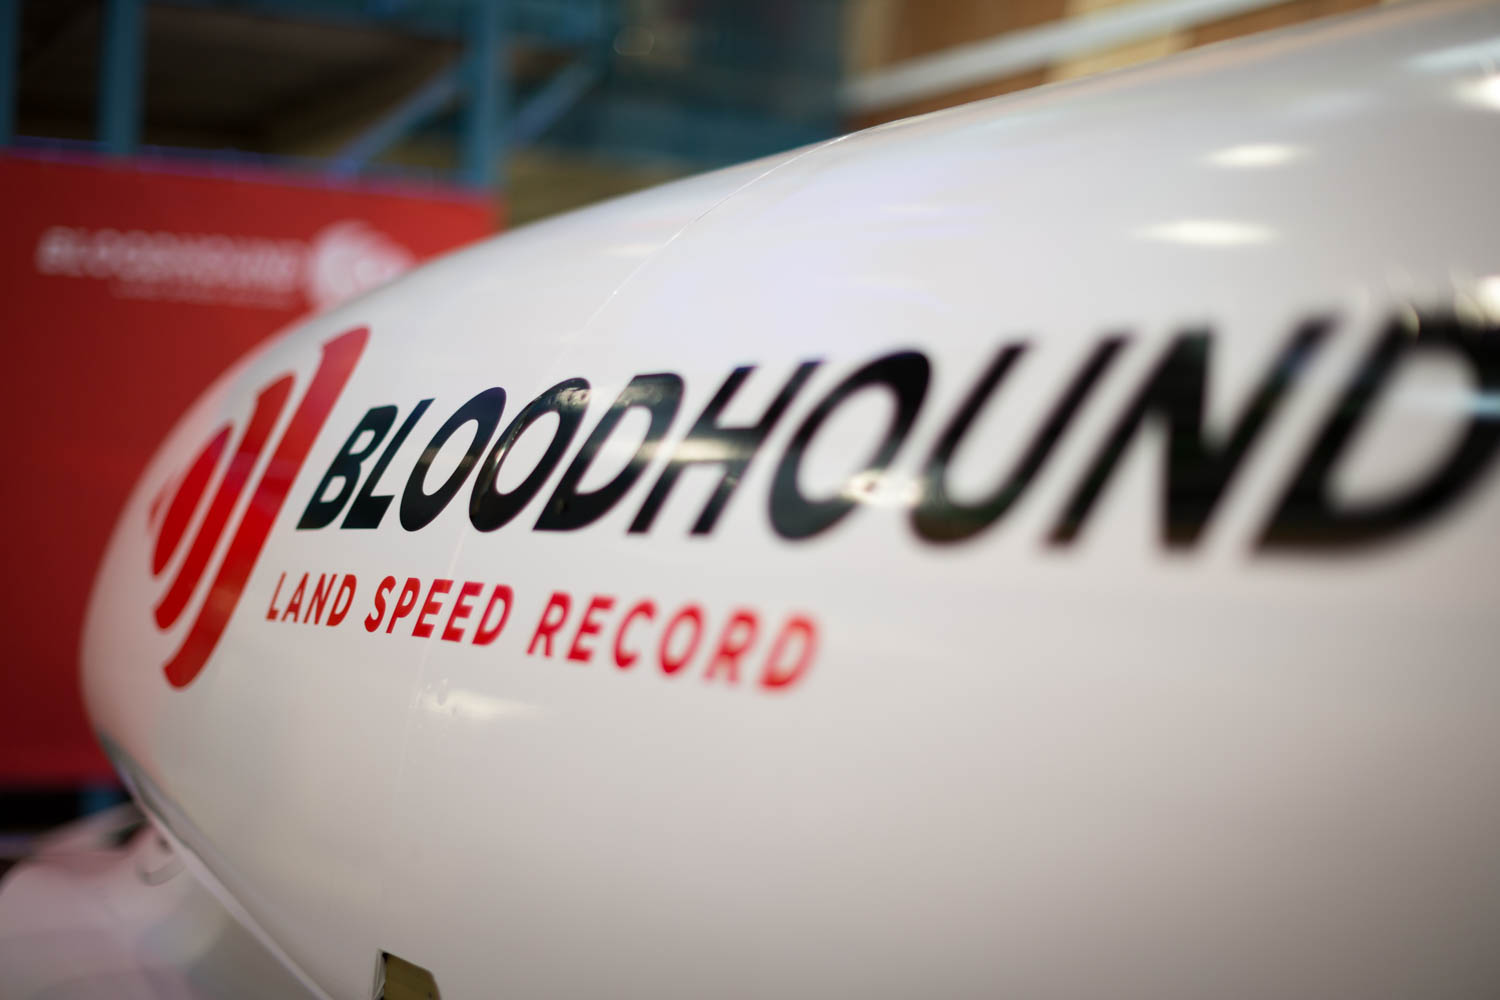 Bloodhound Land Speed Record graphics